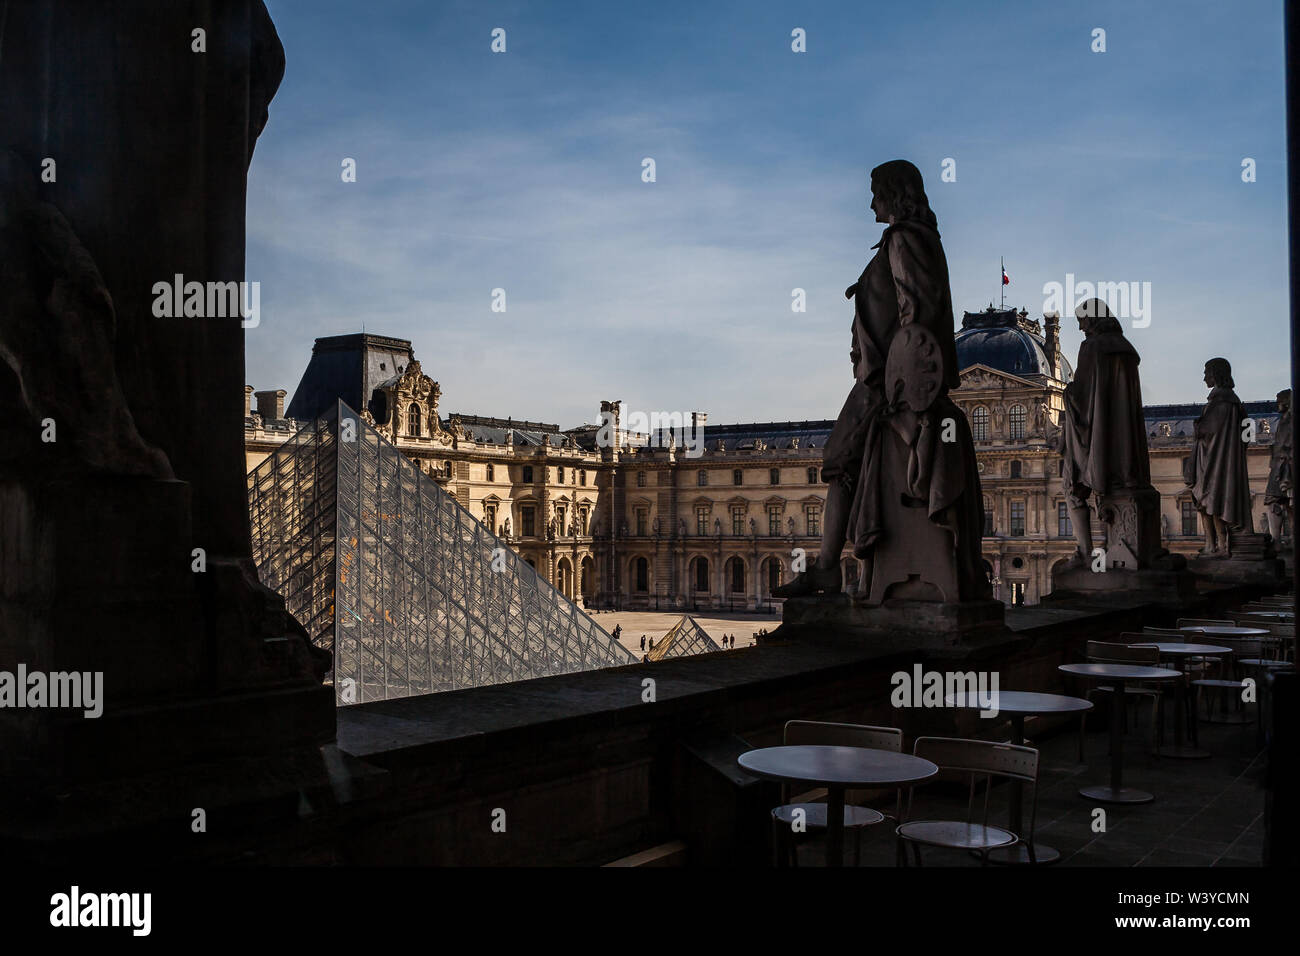 looking down over the Louvre, Paris France - Stock Image